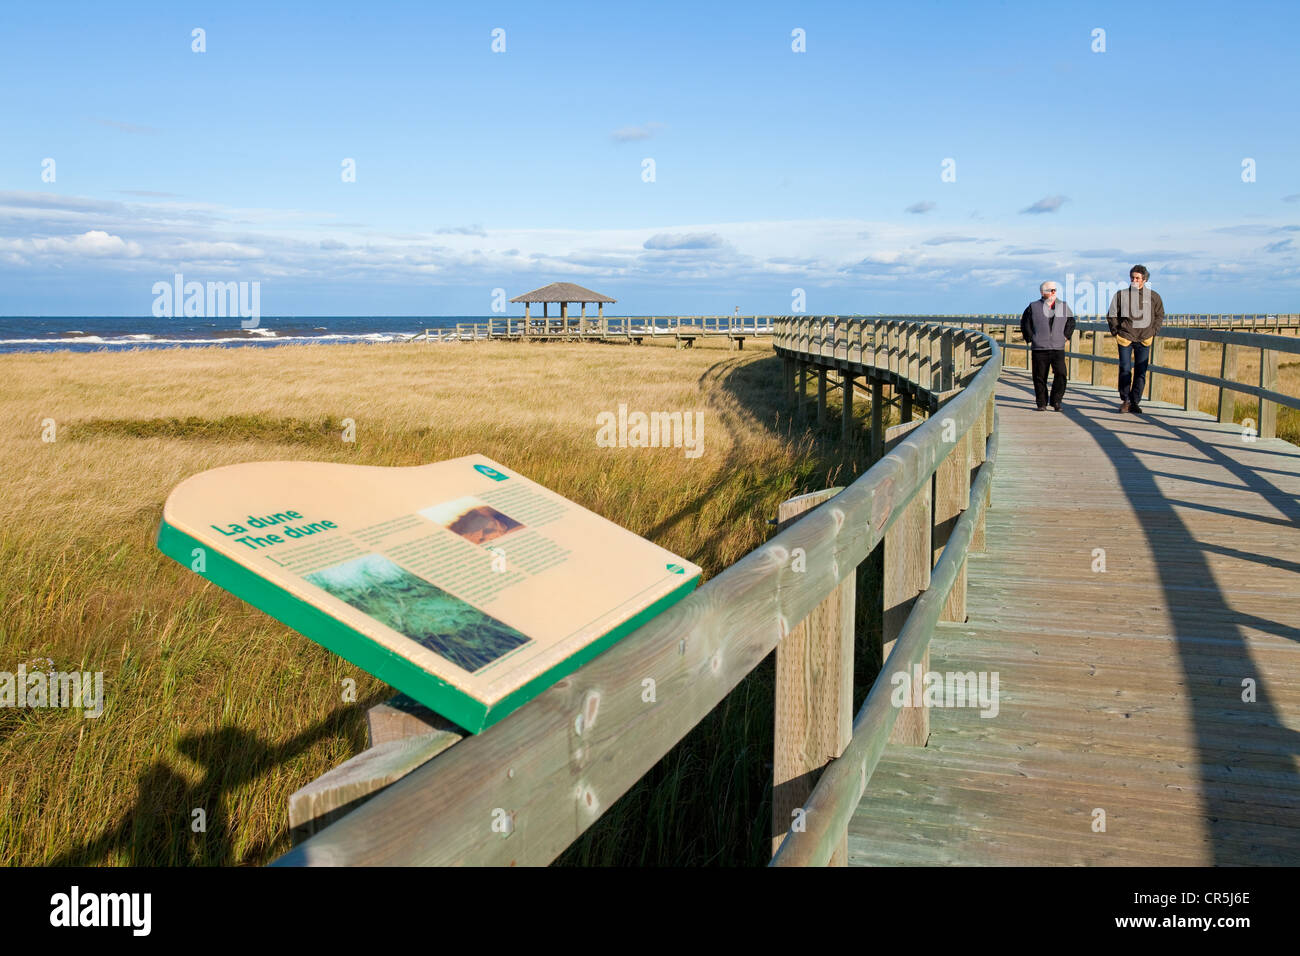 Canada, New Brunswick, Acadia, Bouctouche Dune, Irving Drop-off center - Stock Image